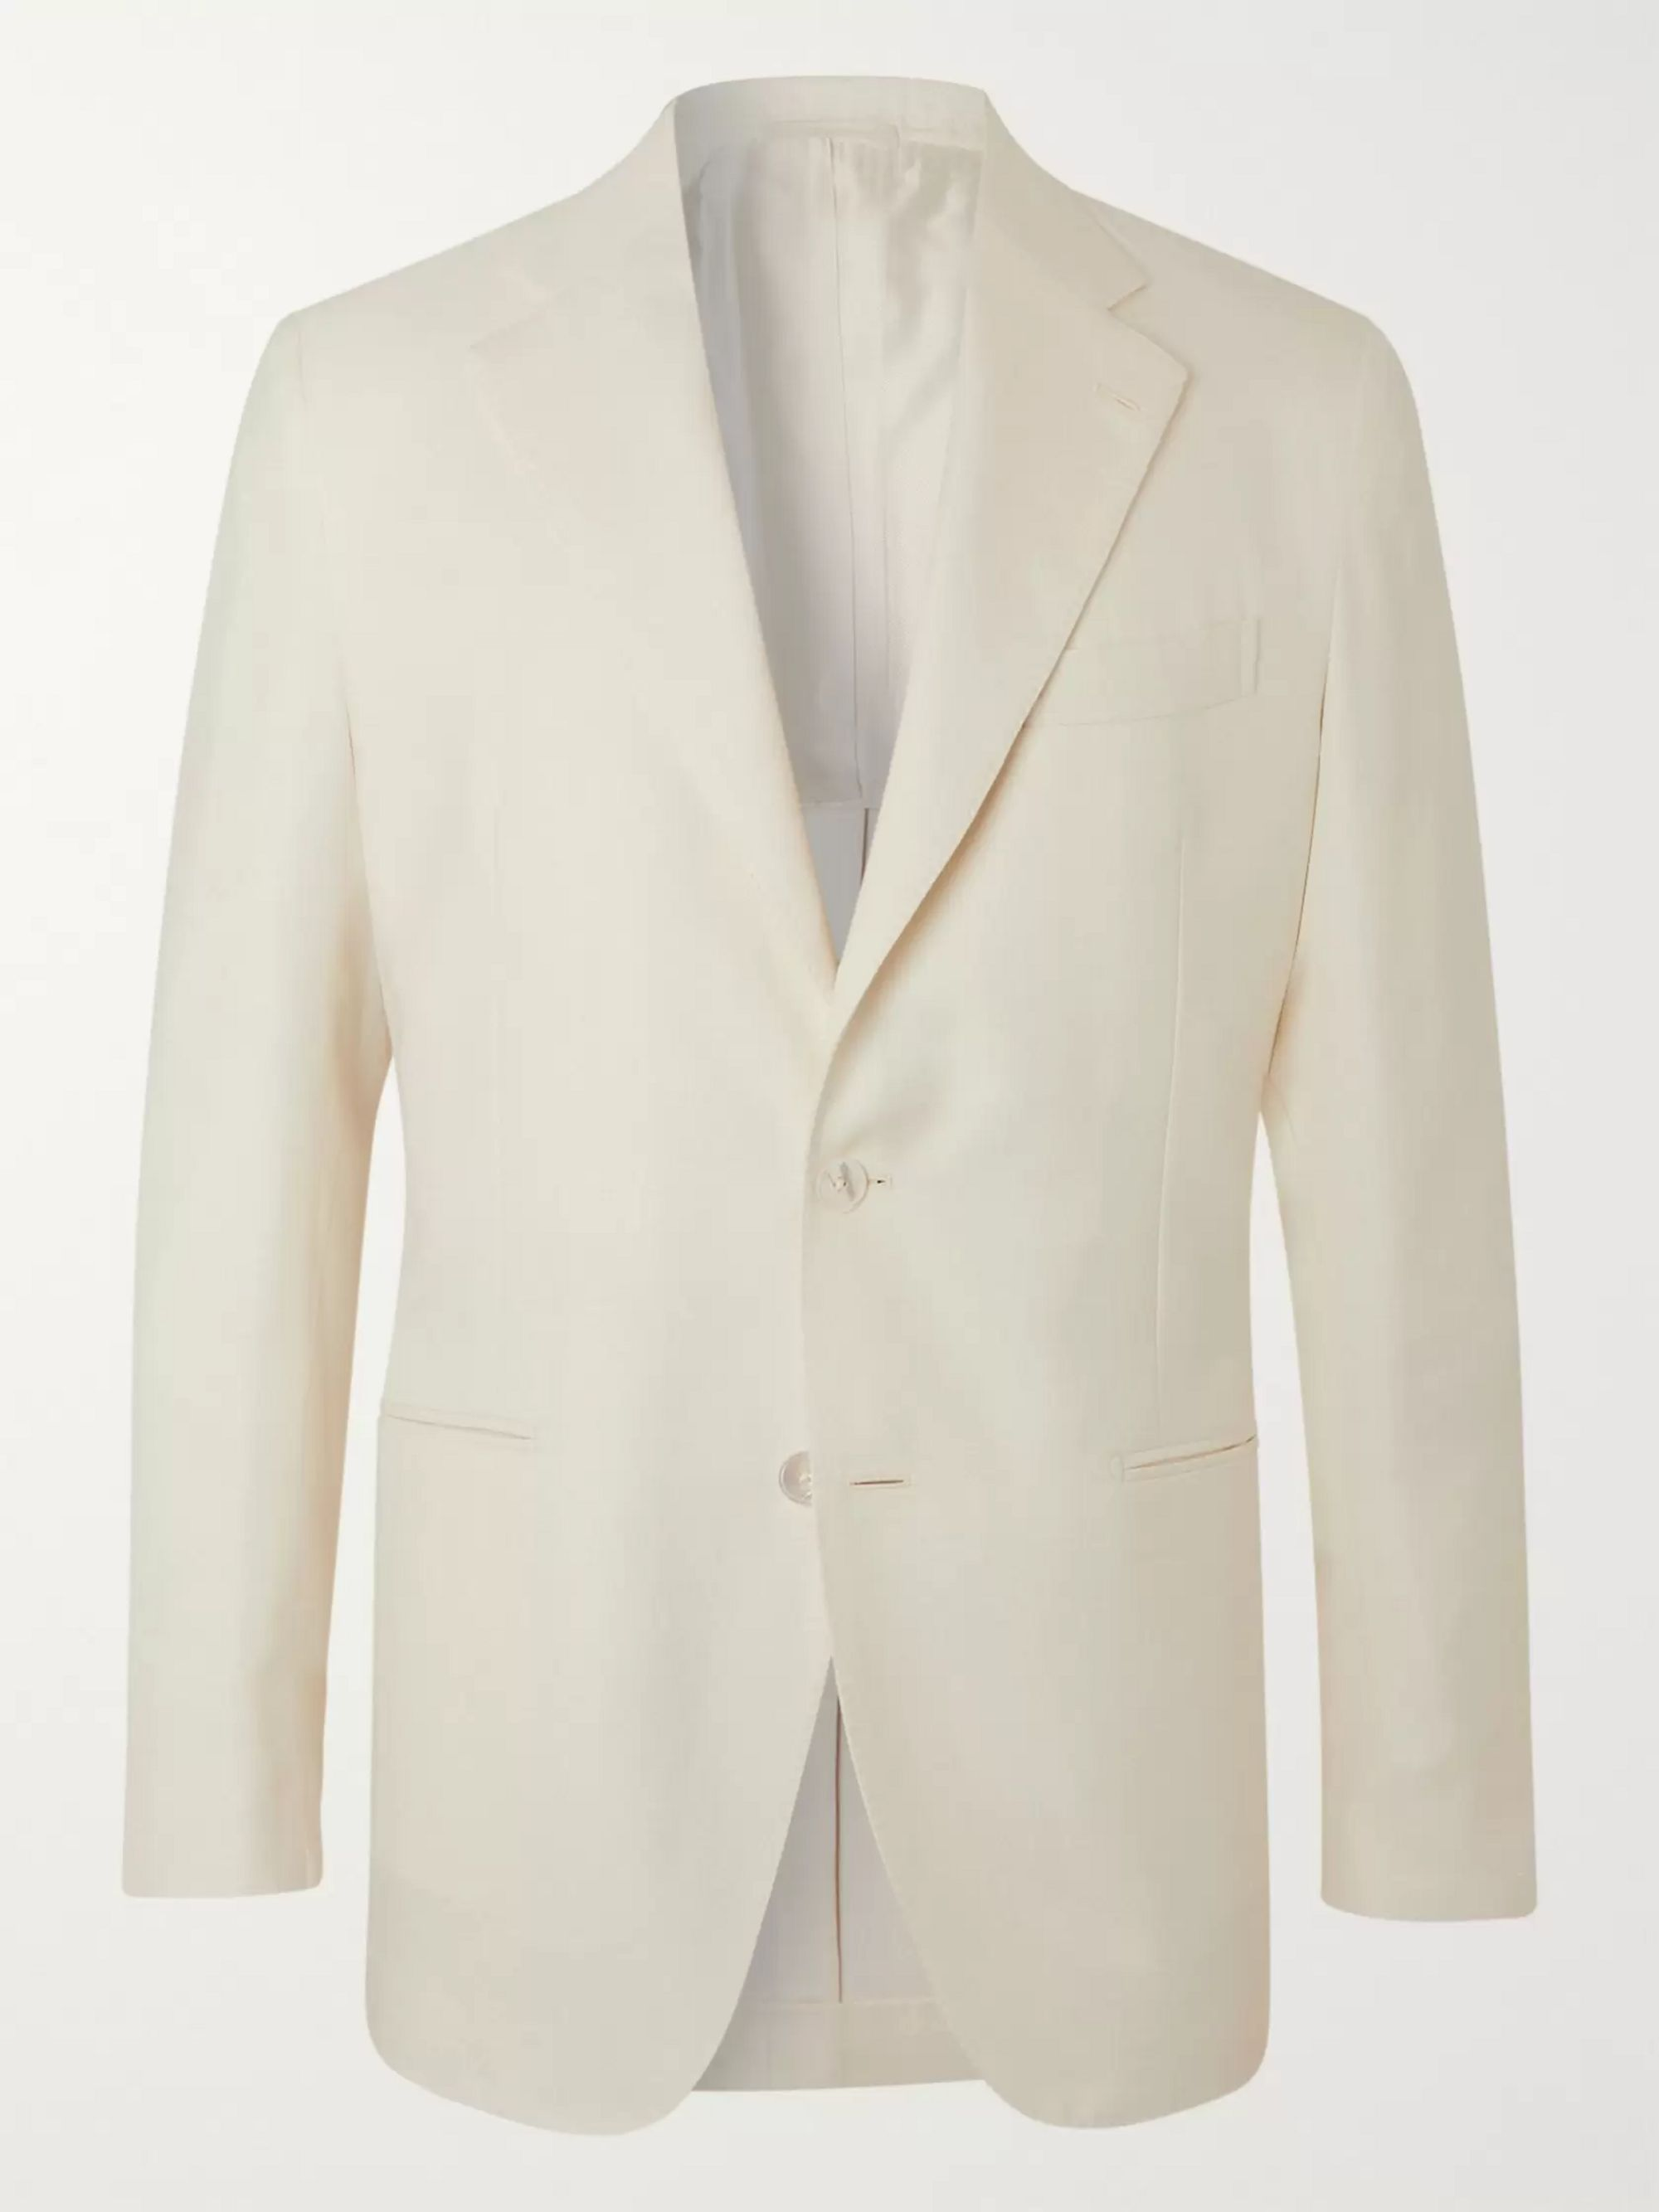 De Petrillo Slim-Fit Wool, Silk and Linen-Blend Suit Jacket